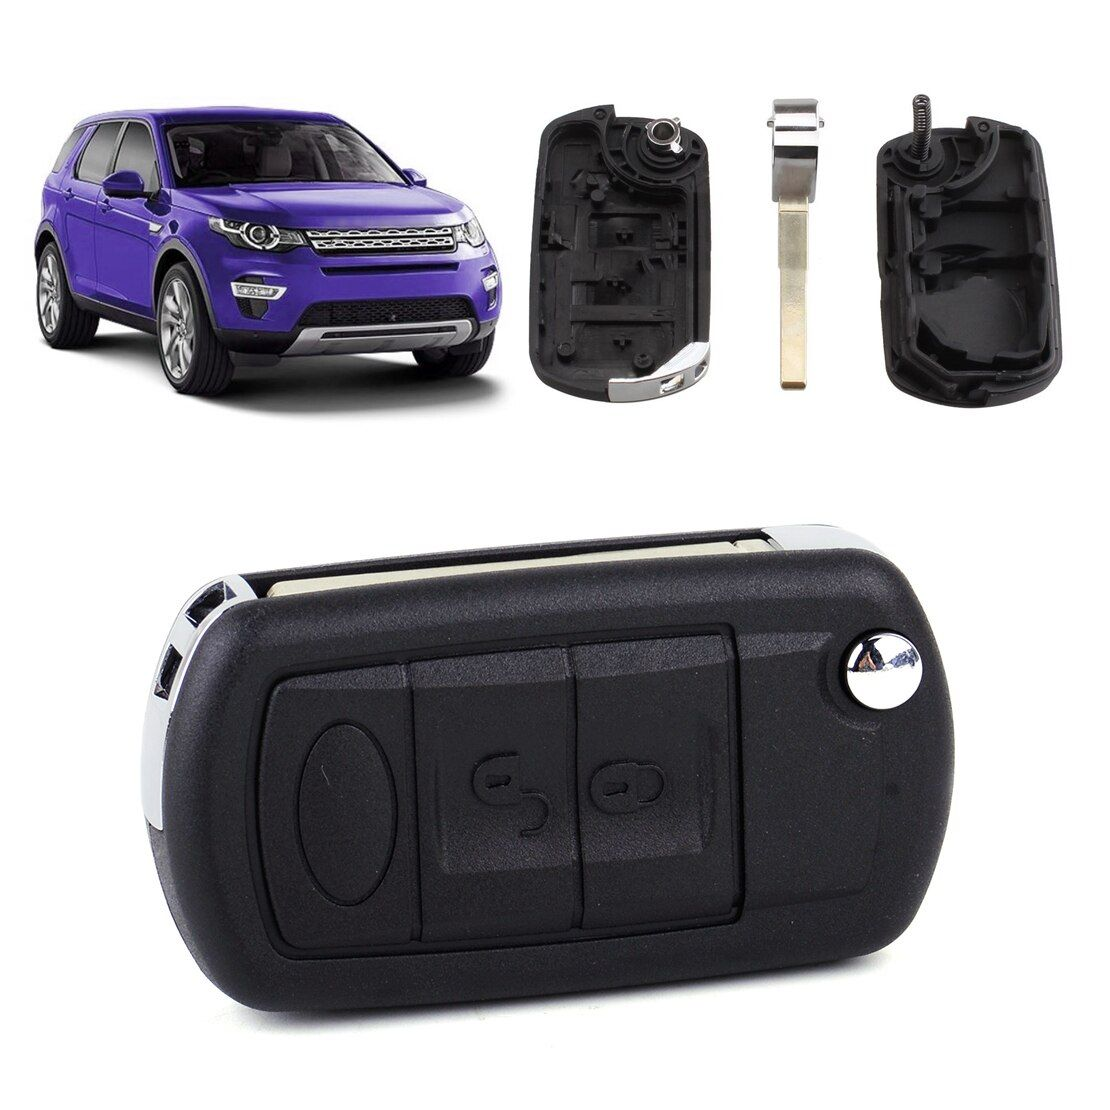 CITALL New 3 Buttons Remote Flip Key Shell Case Fob Fit for Land Rover LR3 Range Rover Sport 2006 2007 2008 2009